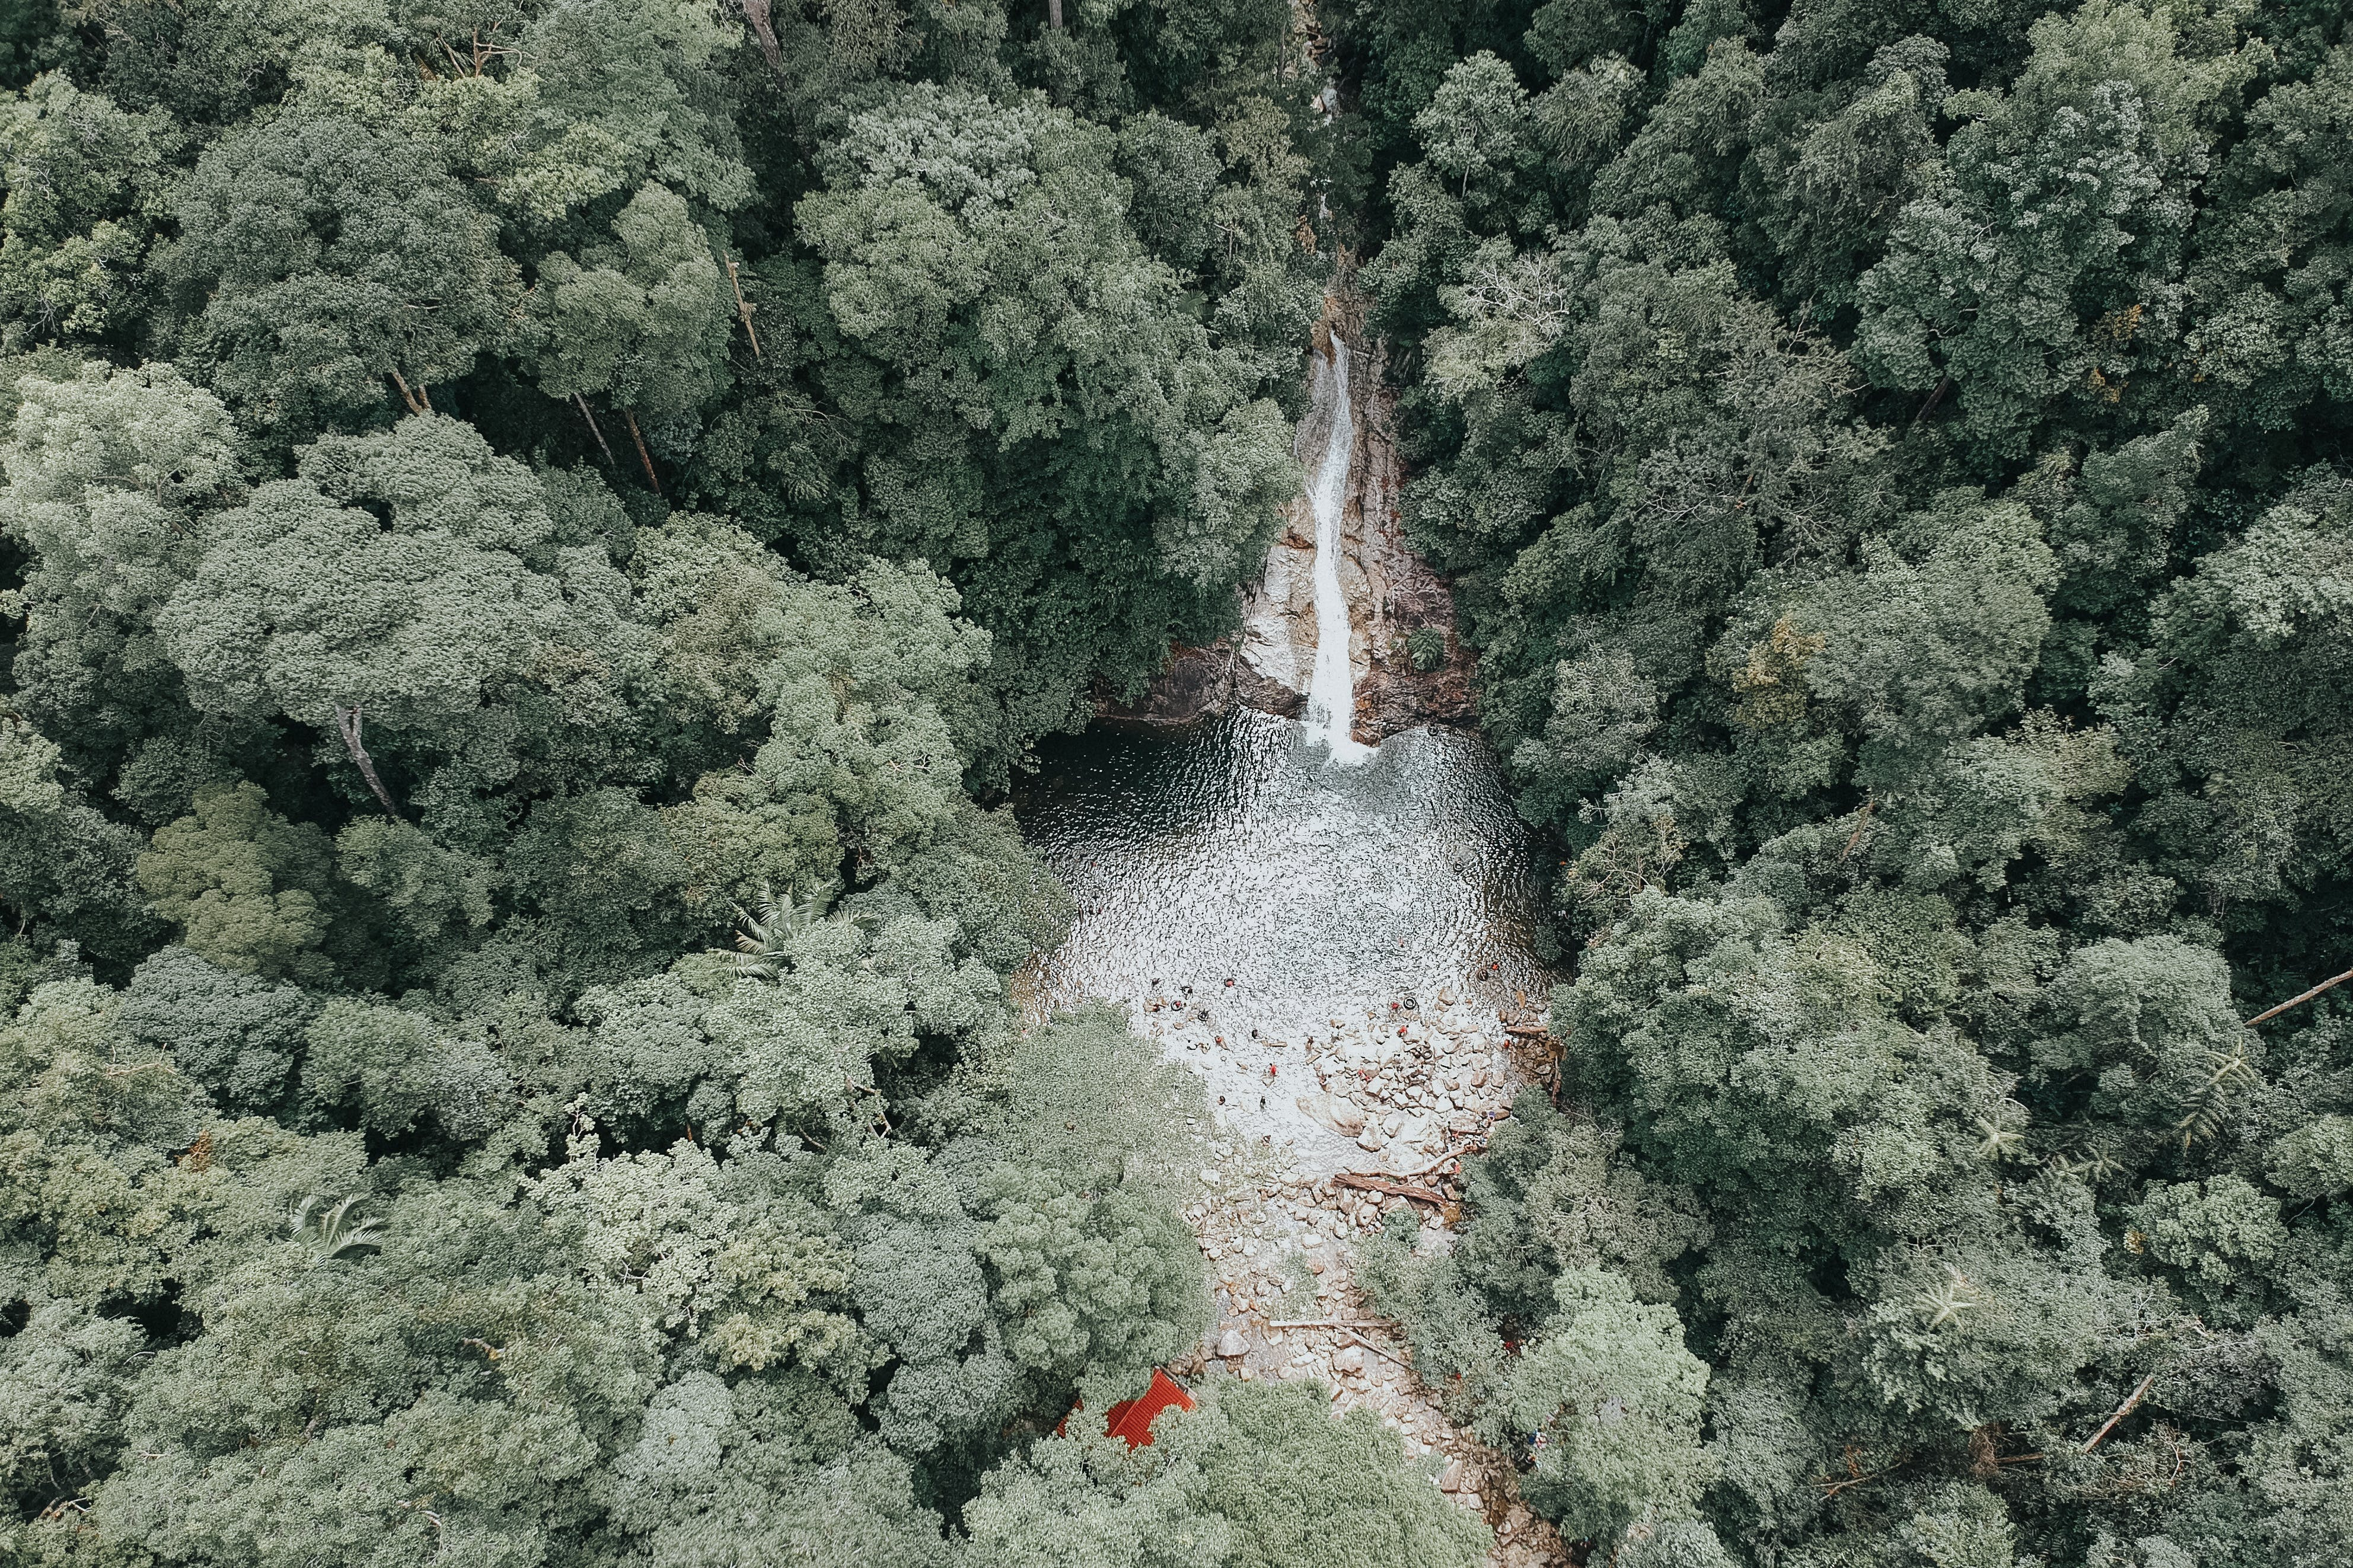 Bird's-eye View Photography Waterfalls Surrounded by Trees